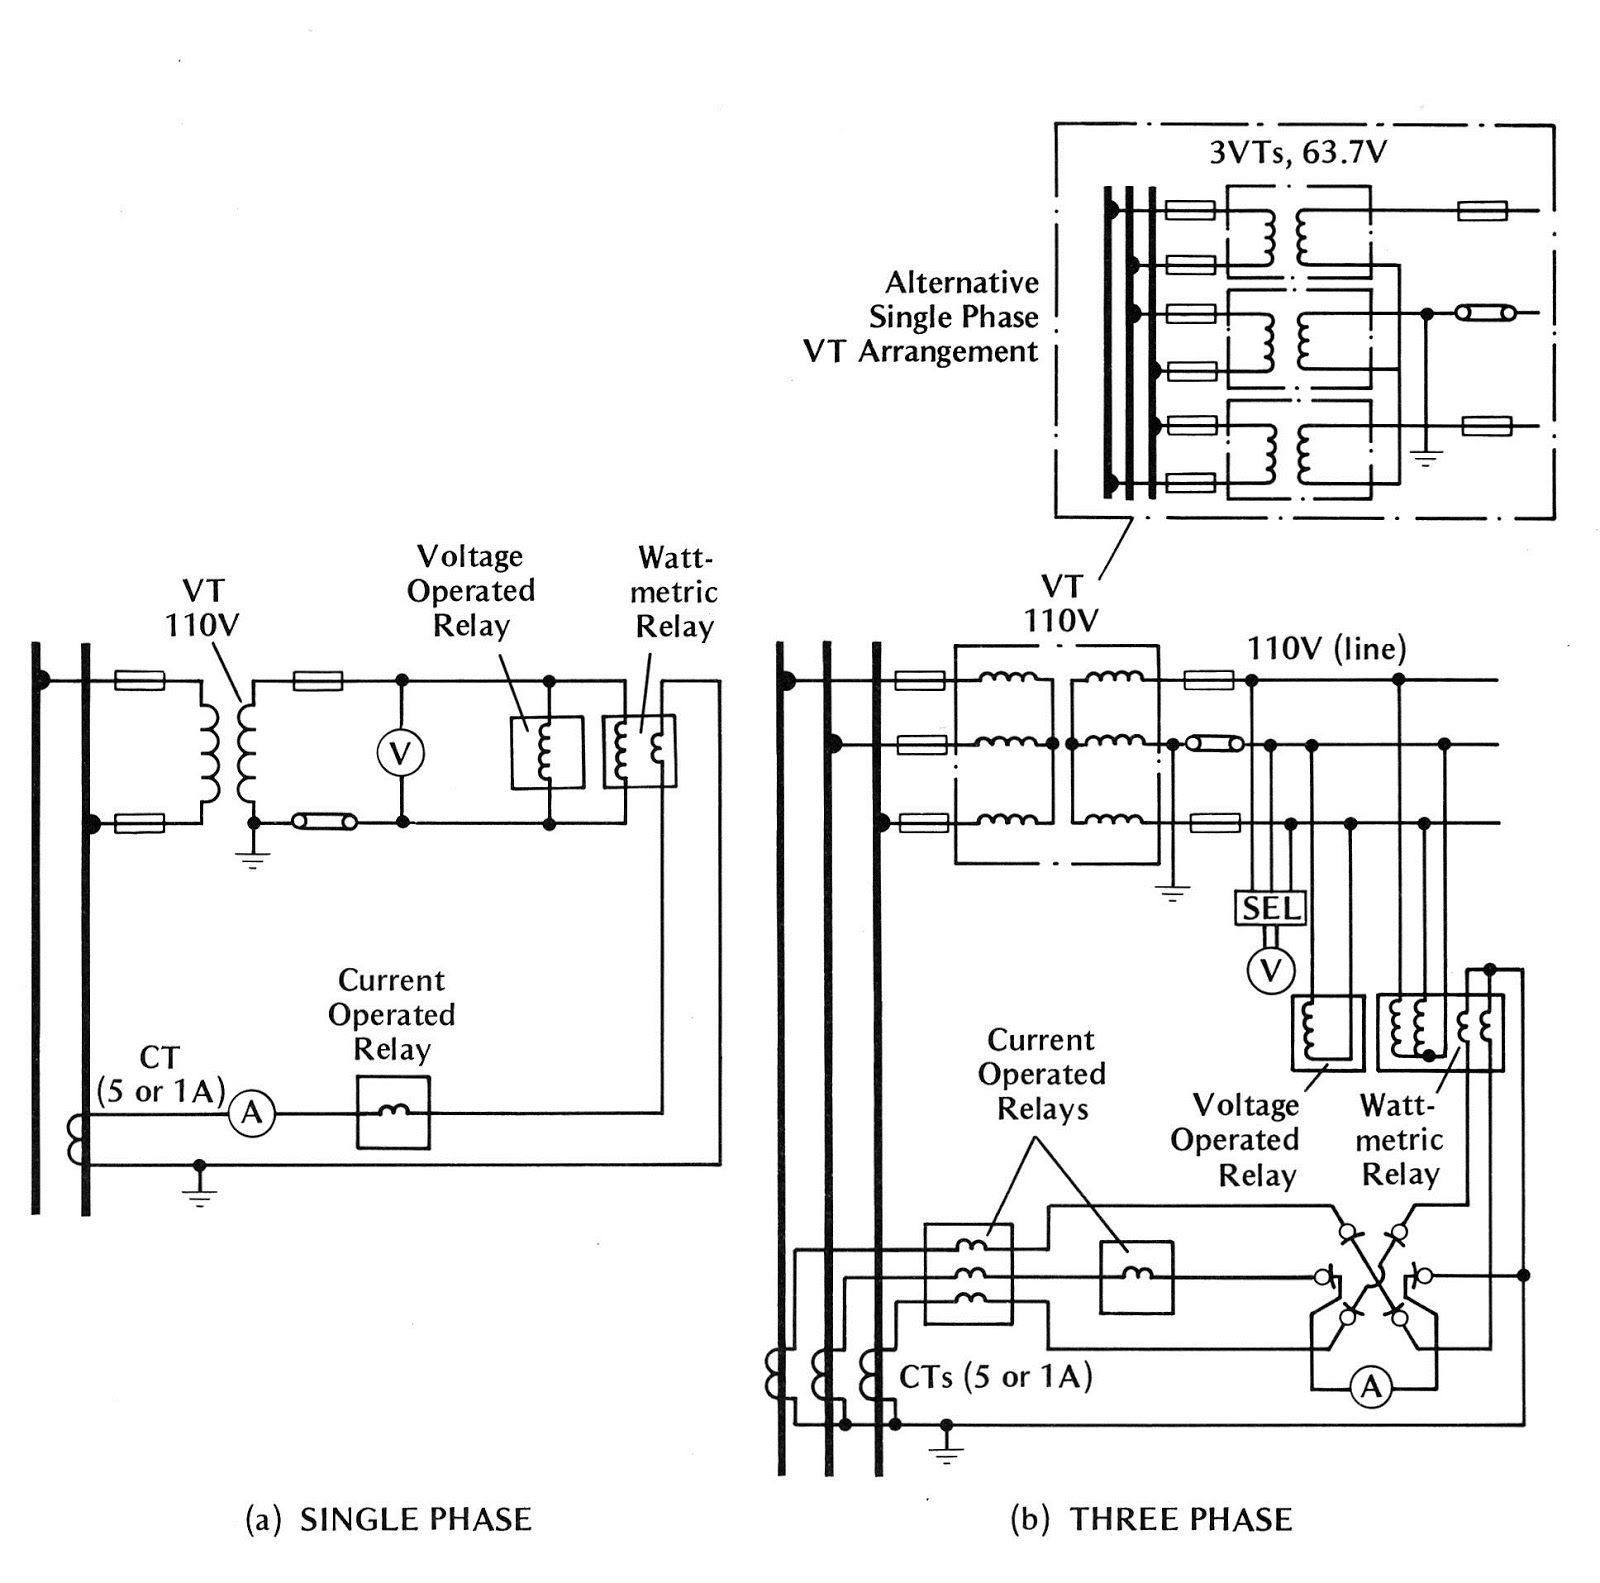 transformers wiring diagrams transformers image wiring diagrams for metering transformers wiring diagram blog on transformers wiring diagrams